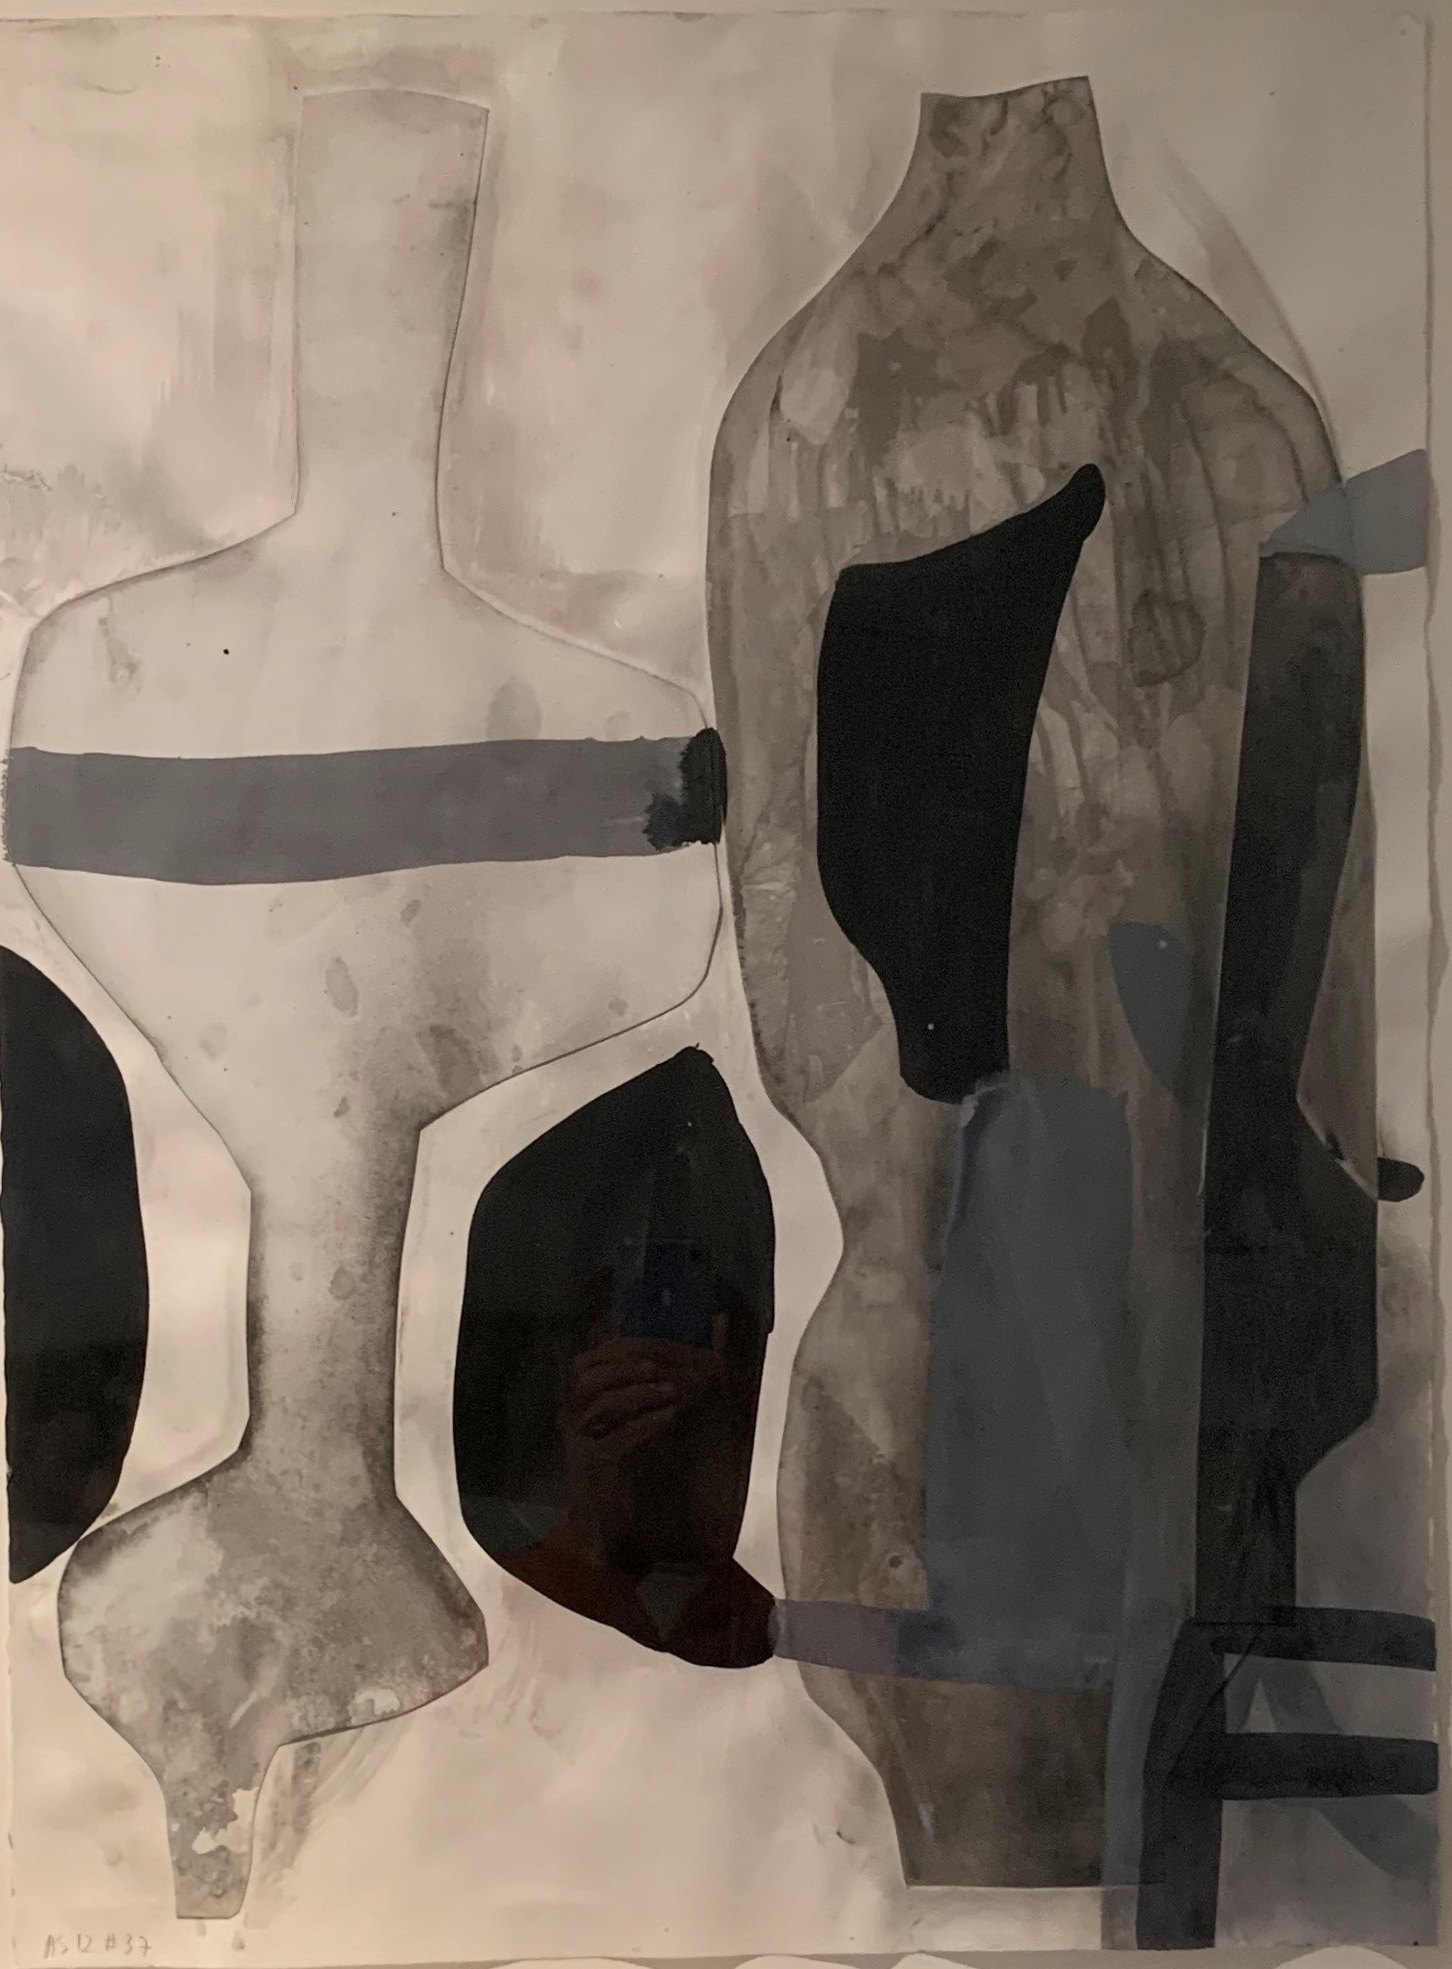 A Shape that Stands Up and Listens No 33 artwork by Amy Sillman - art listed for sale on Artplode